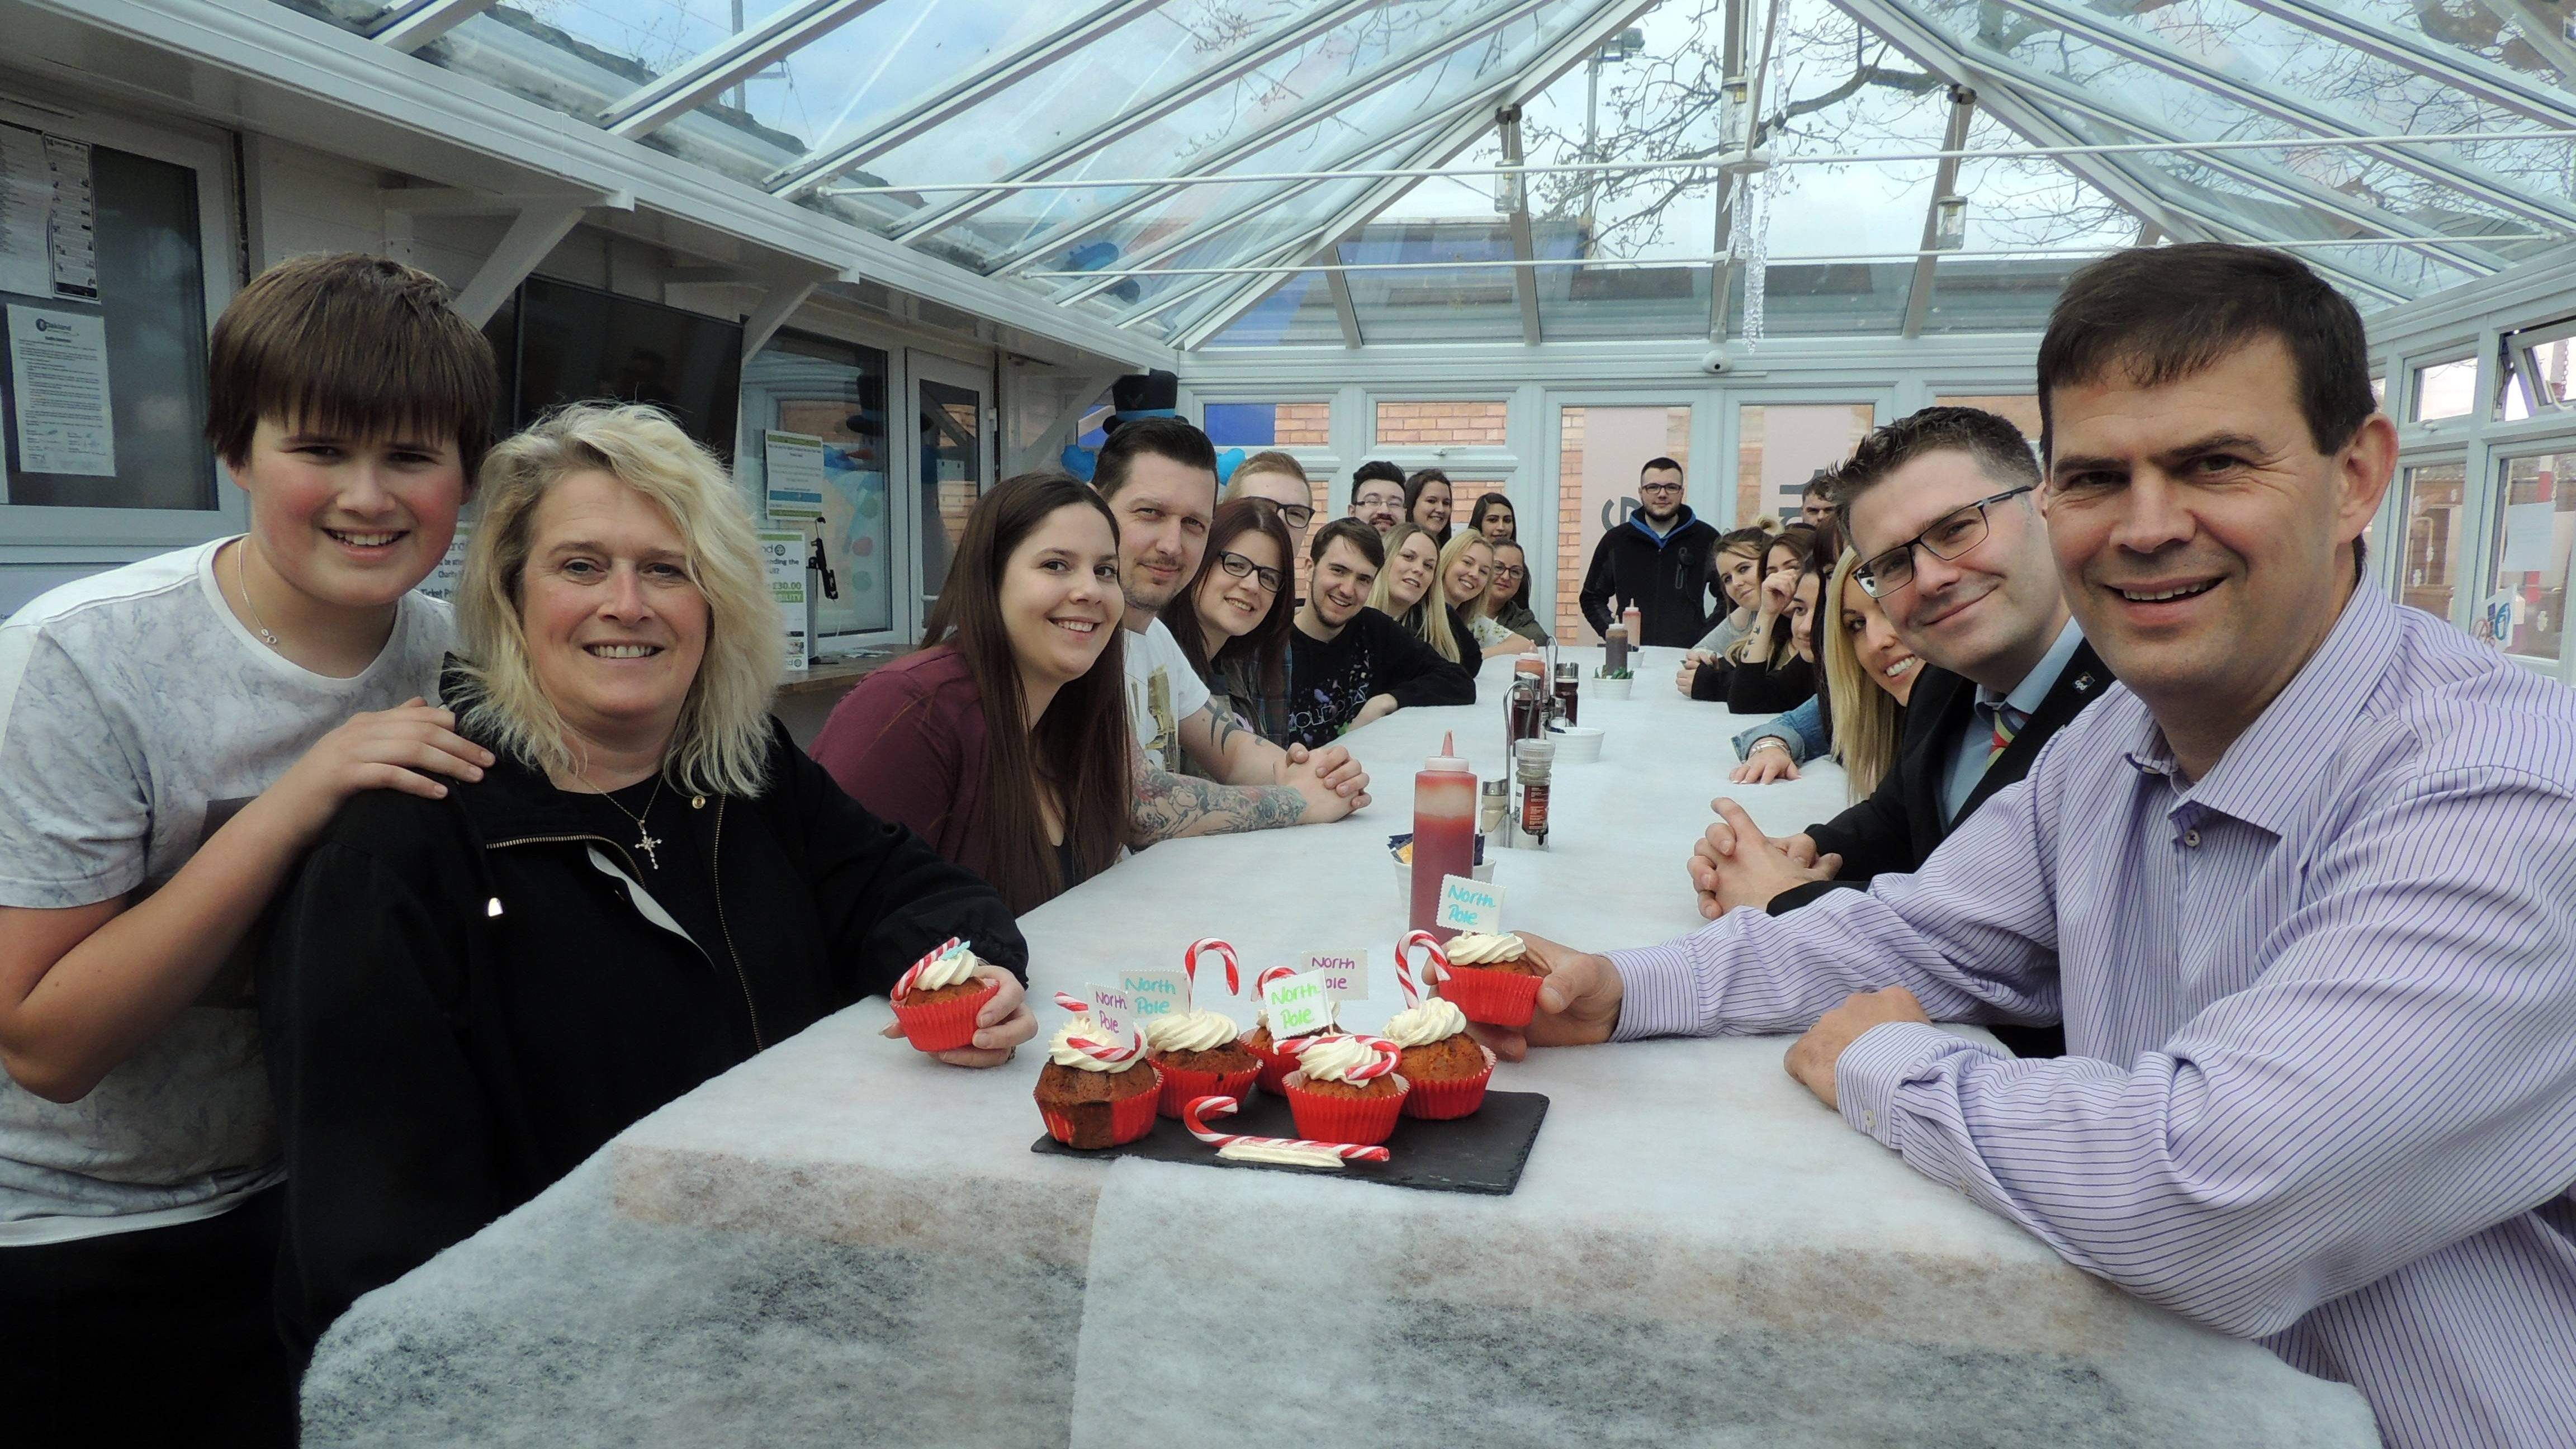 Bon voyage fundraising lunch for Midlands North Pole bound businessman